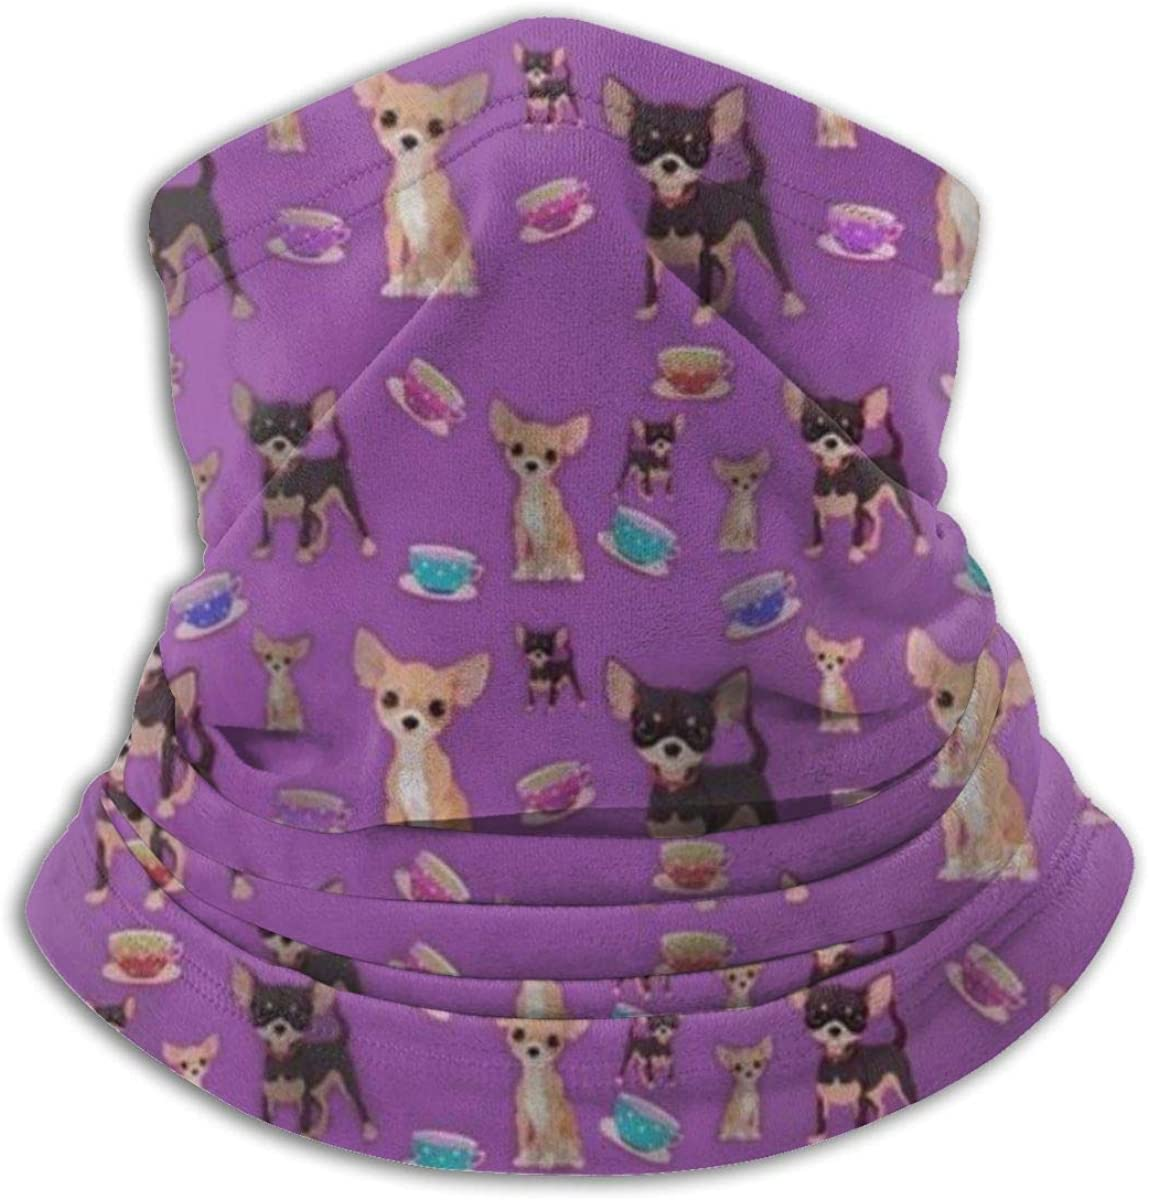 Cute Teacup Chihuahuas Beauty Seamless Face Mask Neck Gaiter Bandanas Multi-Functiona for Dust, Outdoors, Festivals, Sports Black